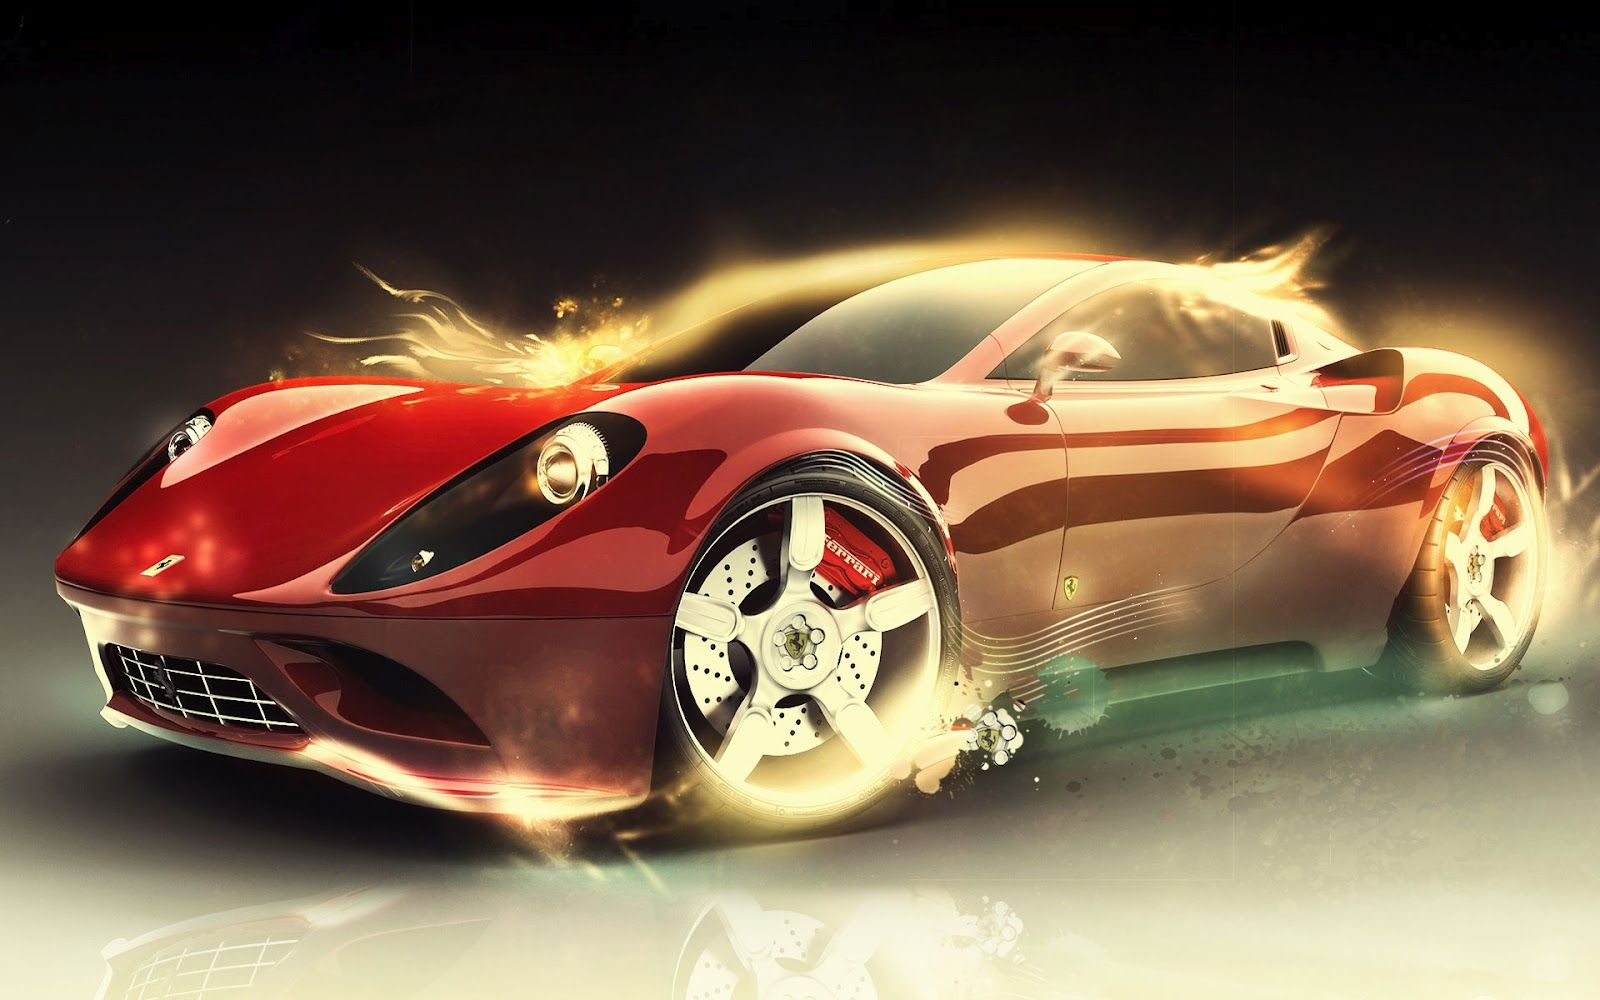 Charmant Ferrari Cars Wallpapers And Pictures Enjoy New And Latest Pictures Of Ferrari  Cars Wallpapers. We Will Try To Bring The Best For Ferrari Cars Wallpapers  And ...